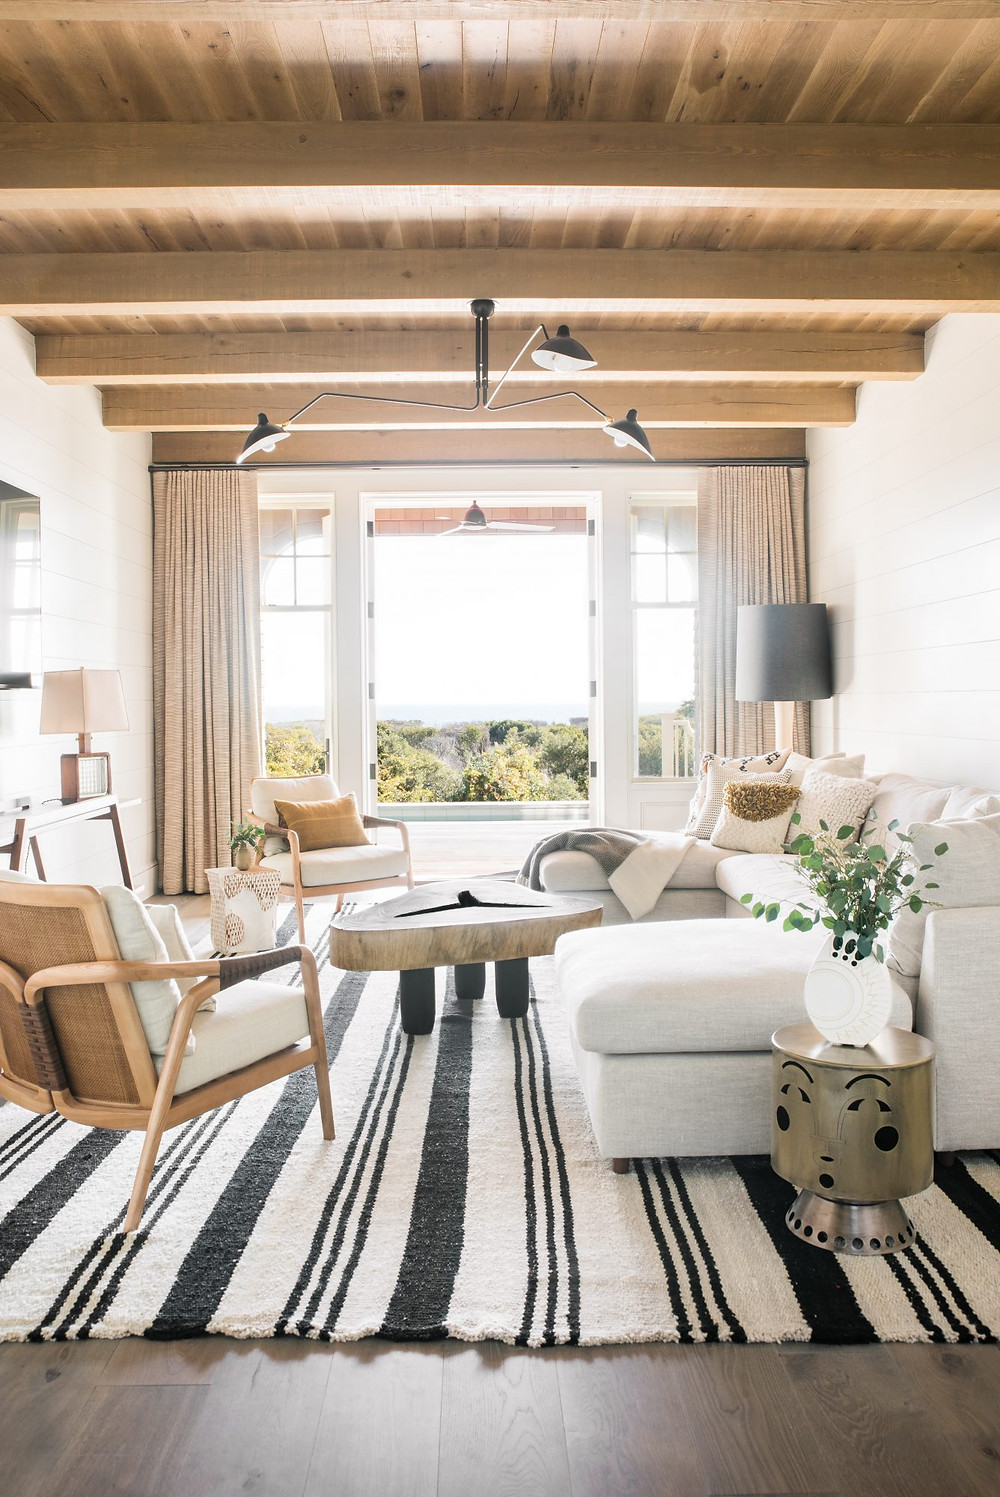 Charming bright and airy Modern Farmhouse. Serge Mouille armed pendant. Natural Rug, Timber Ceiling and Shiplap Walls.